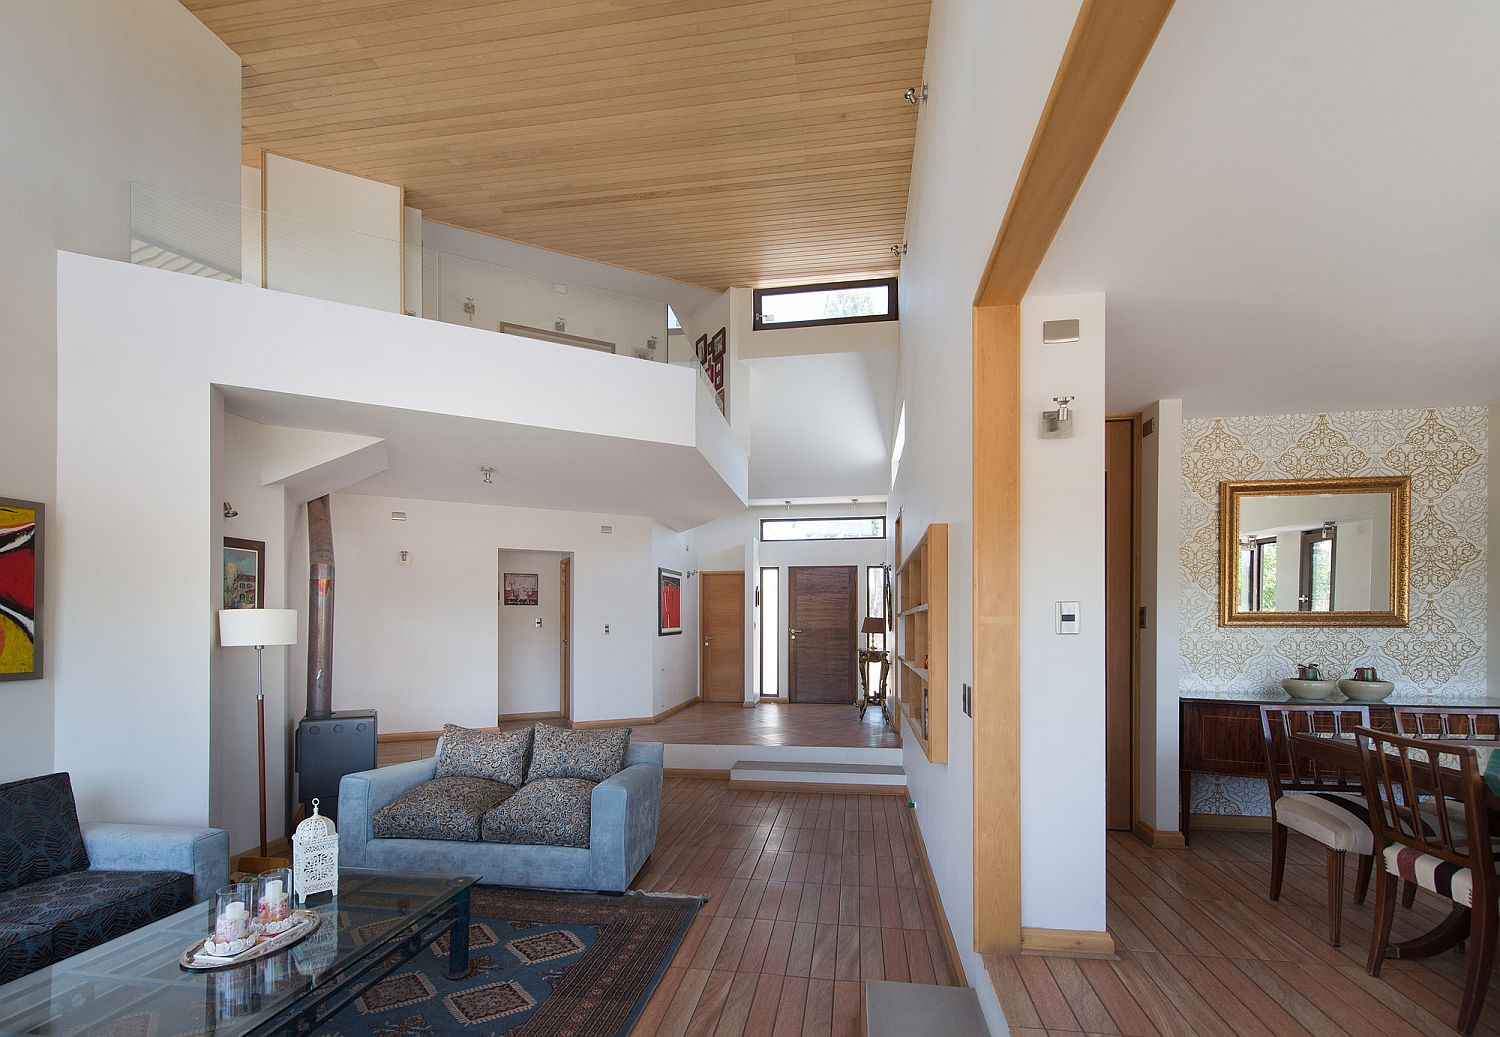 Double-height central living are and dining room of the home in Chile